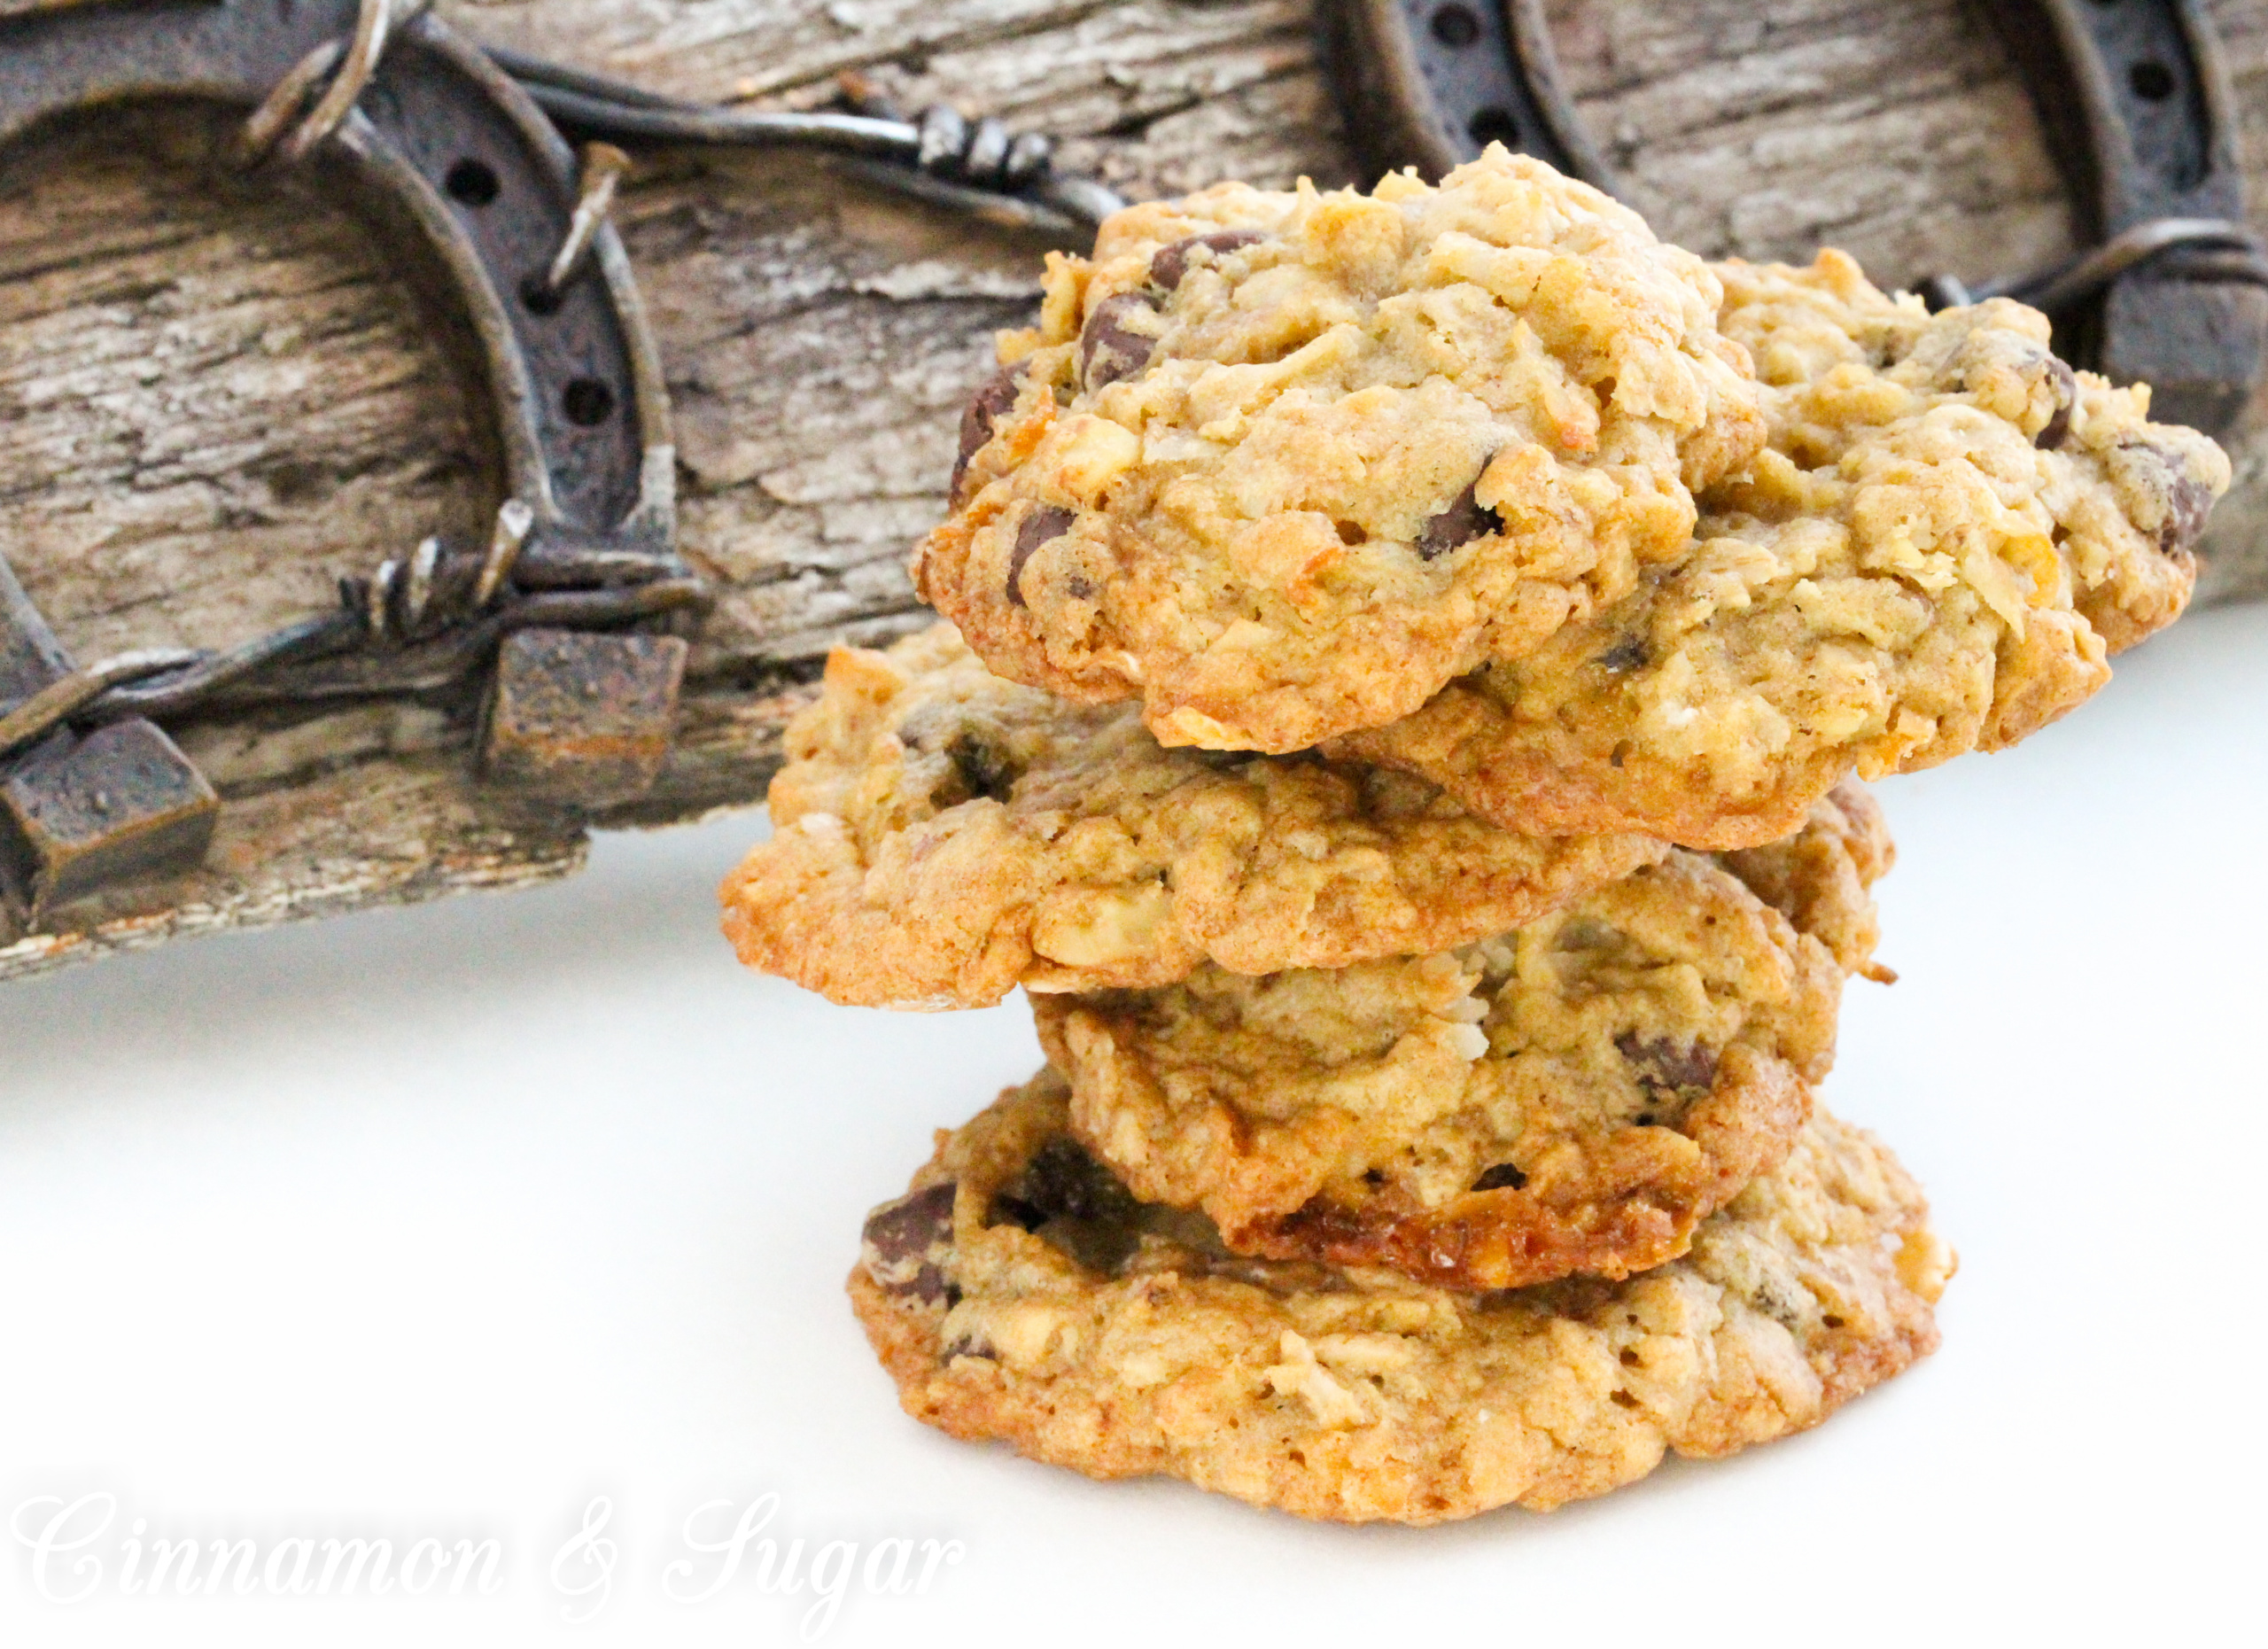 Cowgirl Cookies are the riff to Cowboy Cookies for a little girl's party. Brown sugar based cookie dough is stuffed full of oats, chocolate chips, coconut, marshmallows, and walnuts for a substantial mouthwatering cookie. Recipe from cozy mystery SPRINKLES OF SUSPICION by Kim Davis.